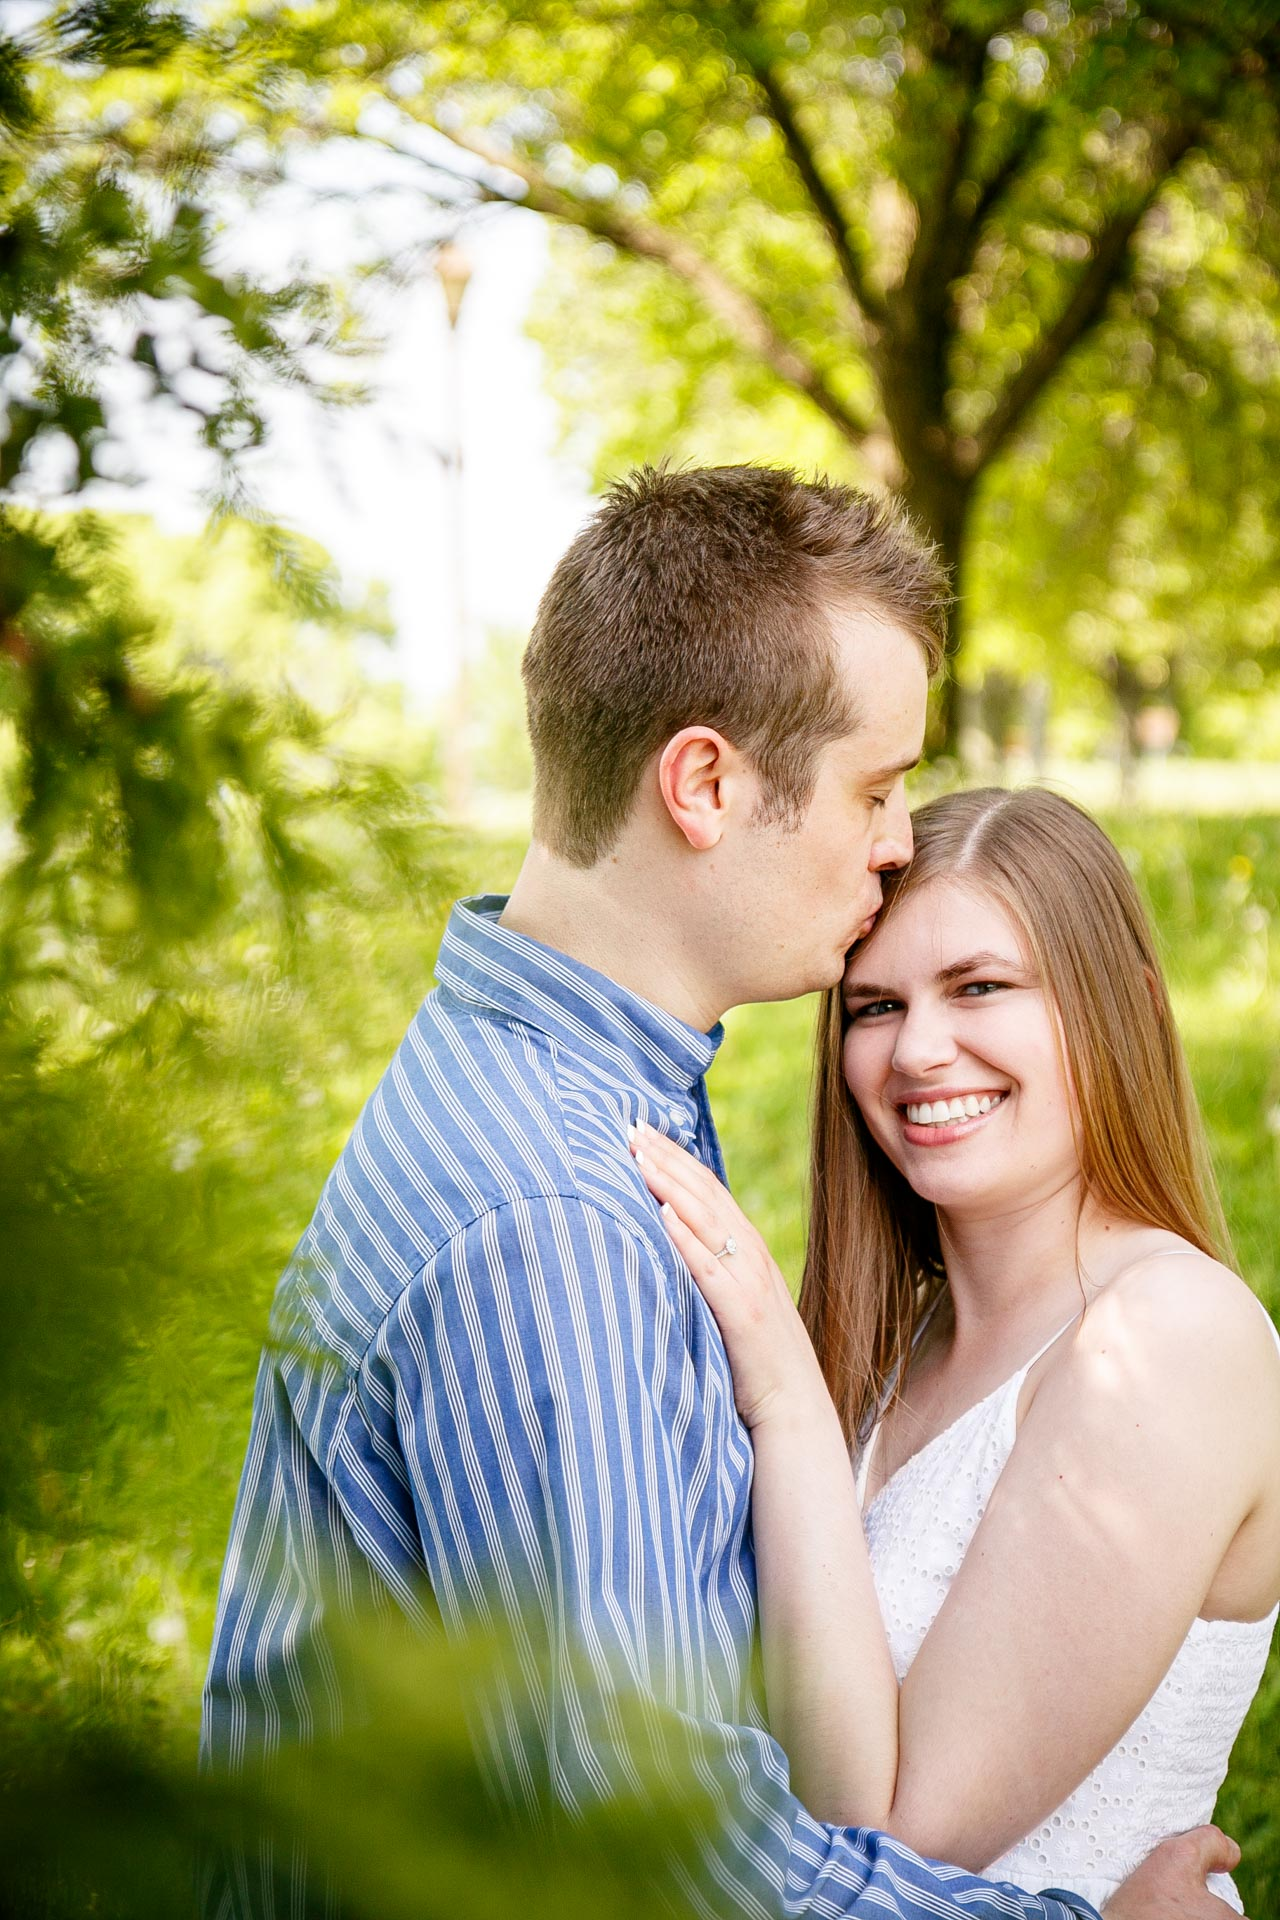 engagement-photos-voyageur-park-de-pere-wisconsin-wi-adam-shea-photography-adam-shea-photography-green-bay-appleton-neenah-photographer-02.jpg